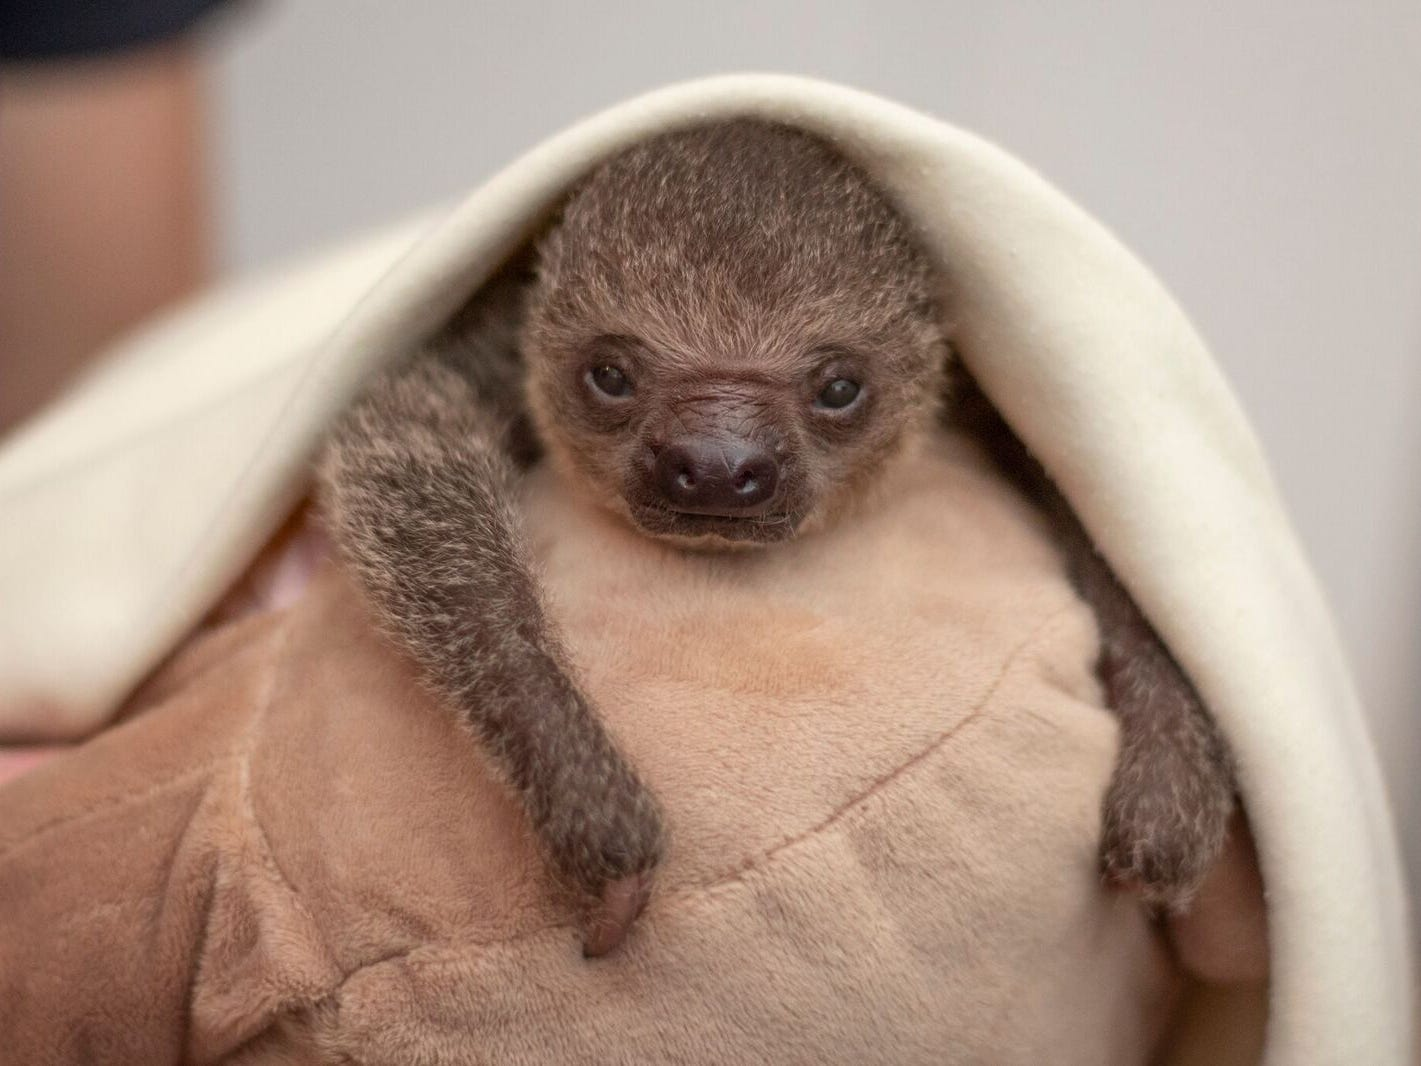 A baby sloth, born October 2018 at the Brevard Zoo, clings to a sloth blanket from the zoo's gift shop. It is being hand-raised by zoo workers.